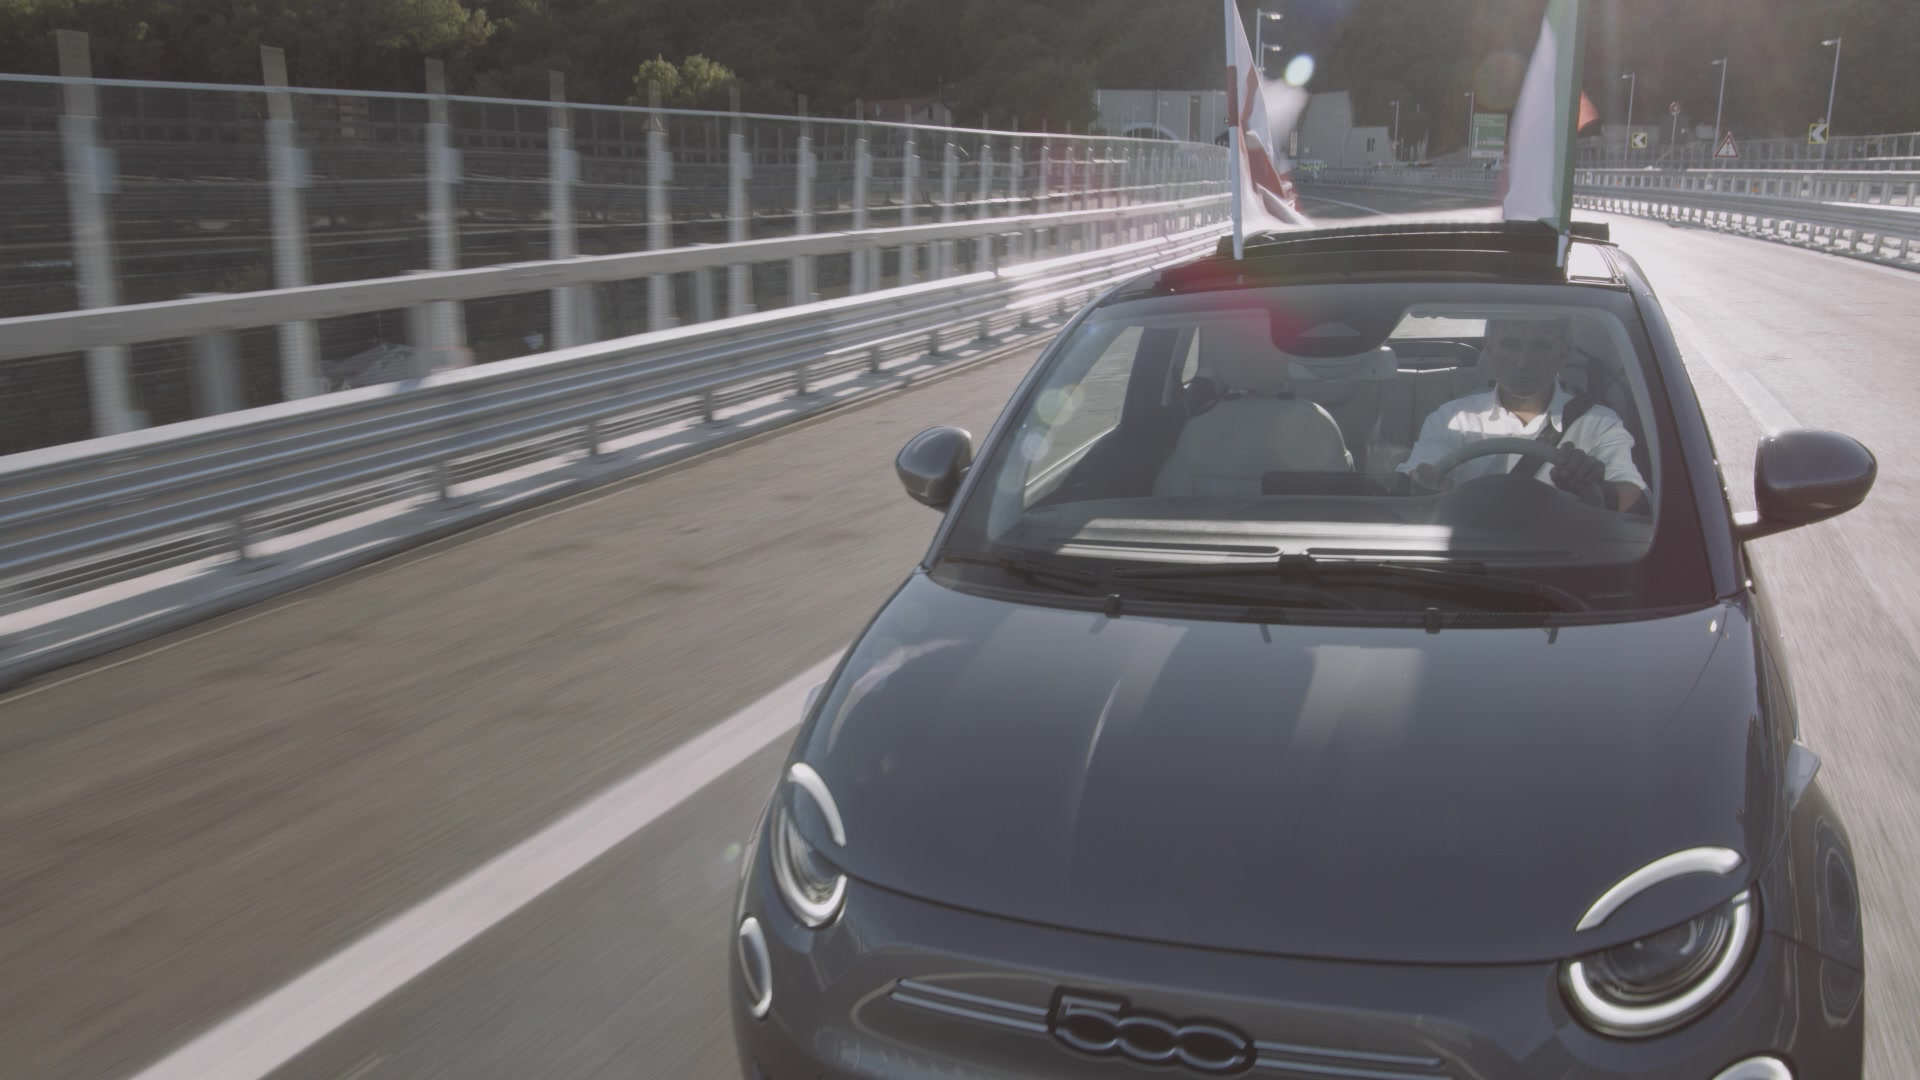 The New 500 has crossed the new Genoa San Giorgio bridge - Footage